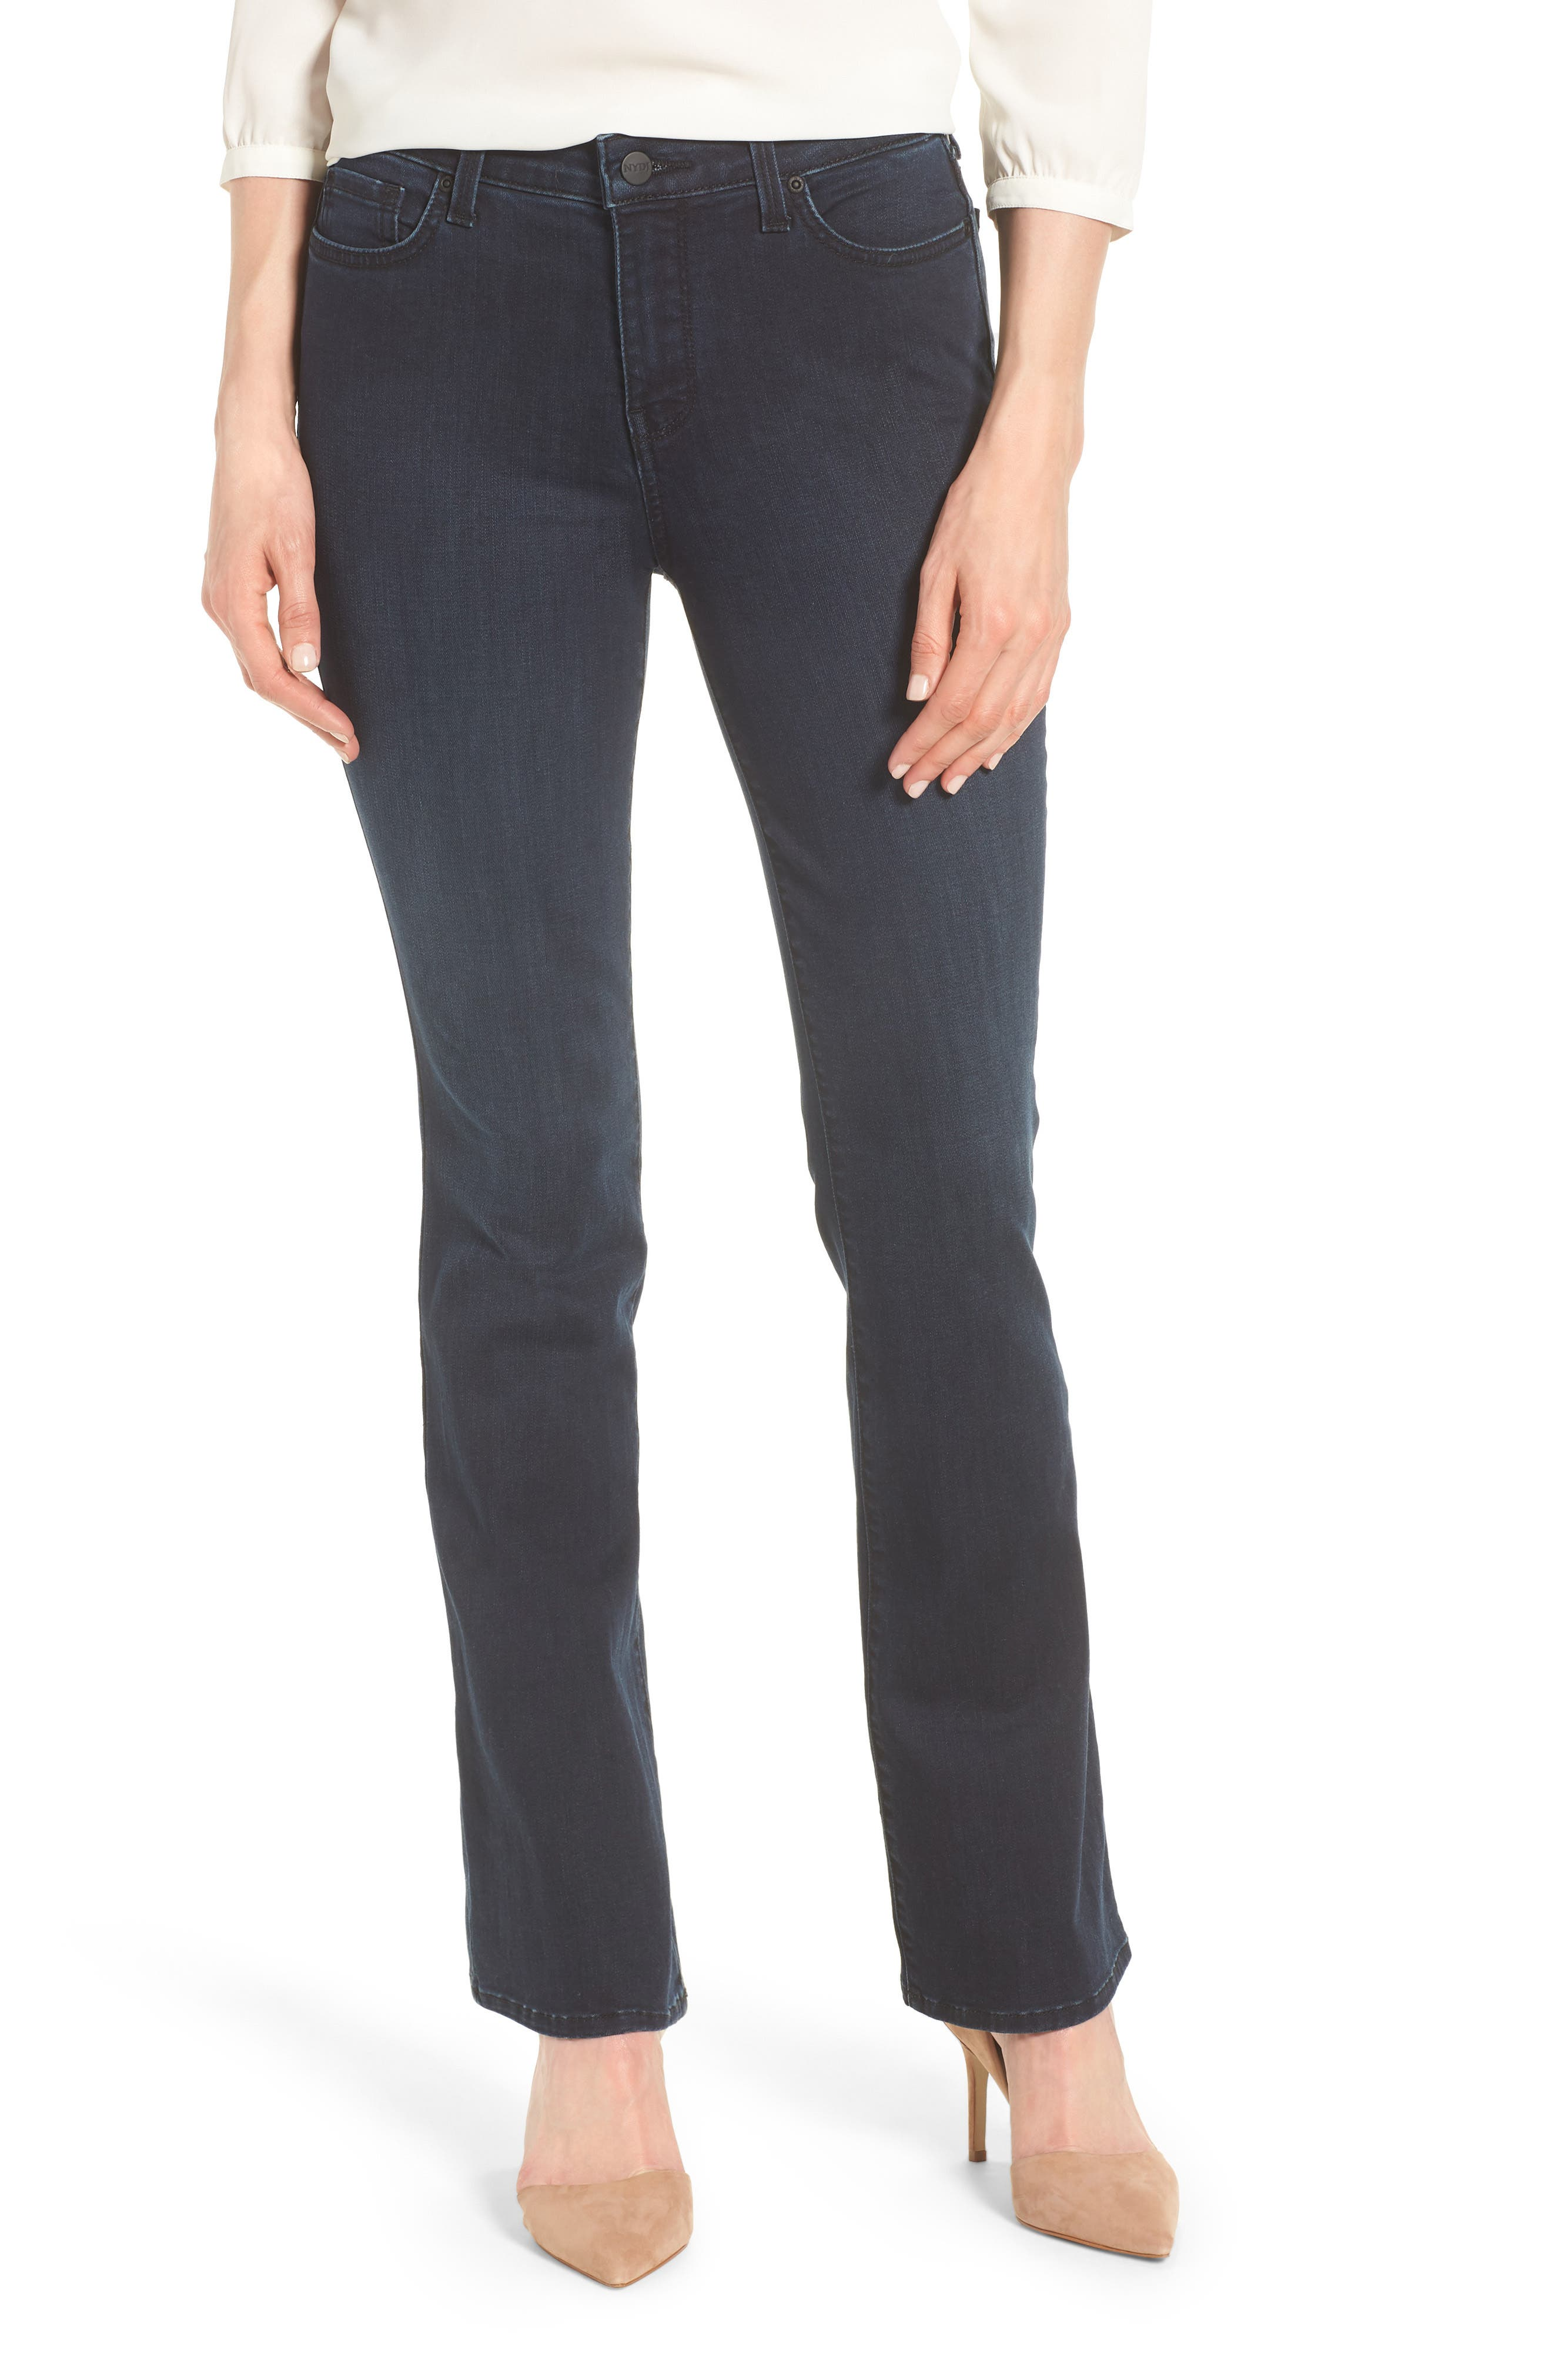 Barbara Bootcut Stretch Skinny Jeans,                             Main thumbnail 1, color,                             407